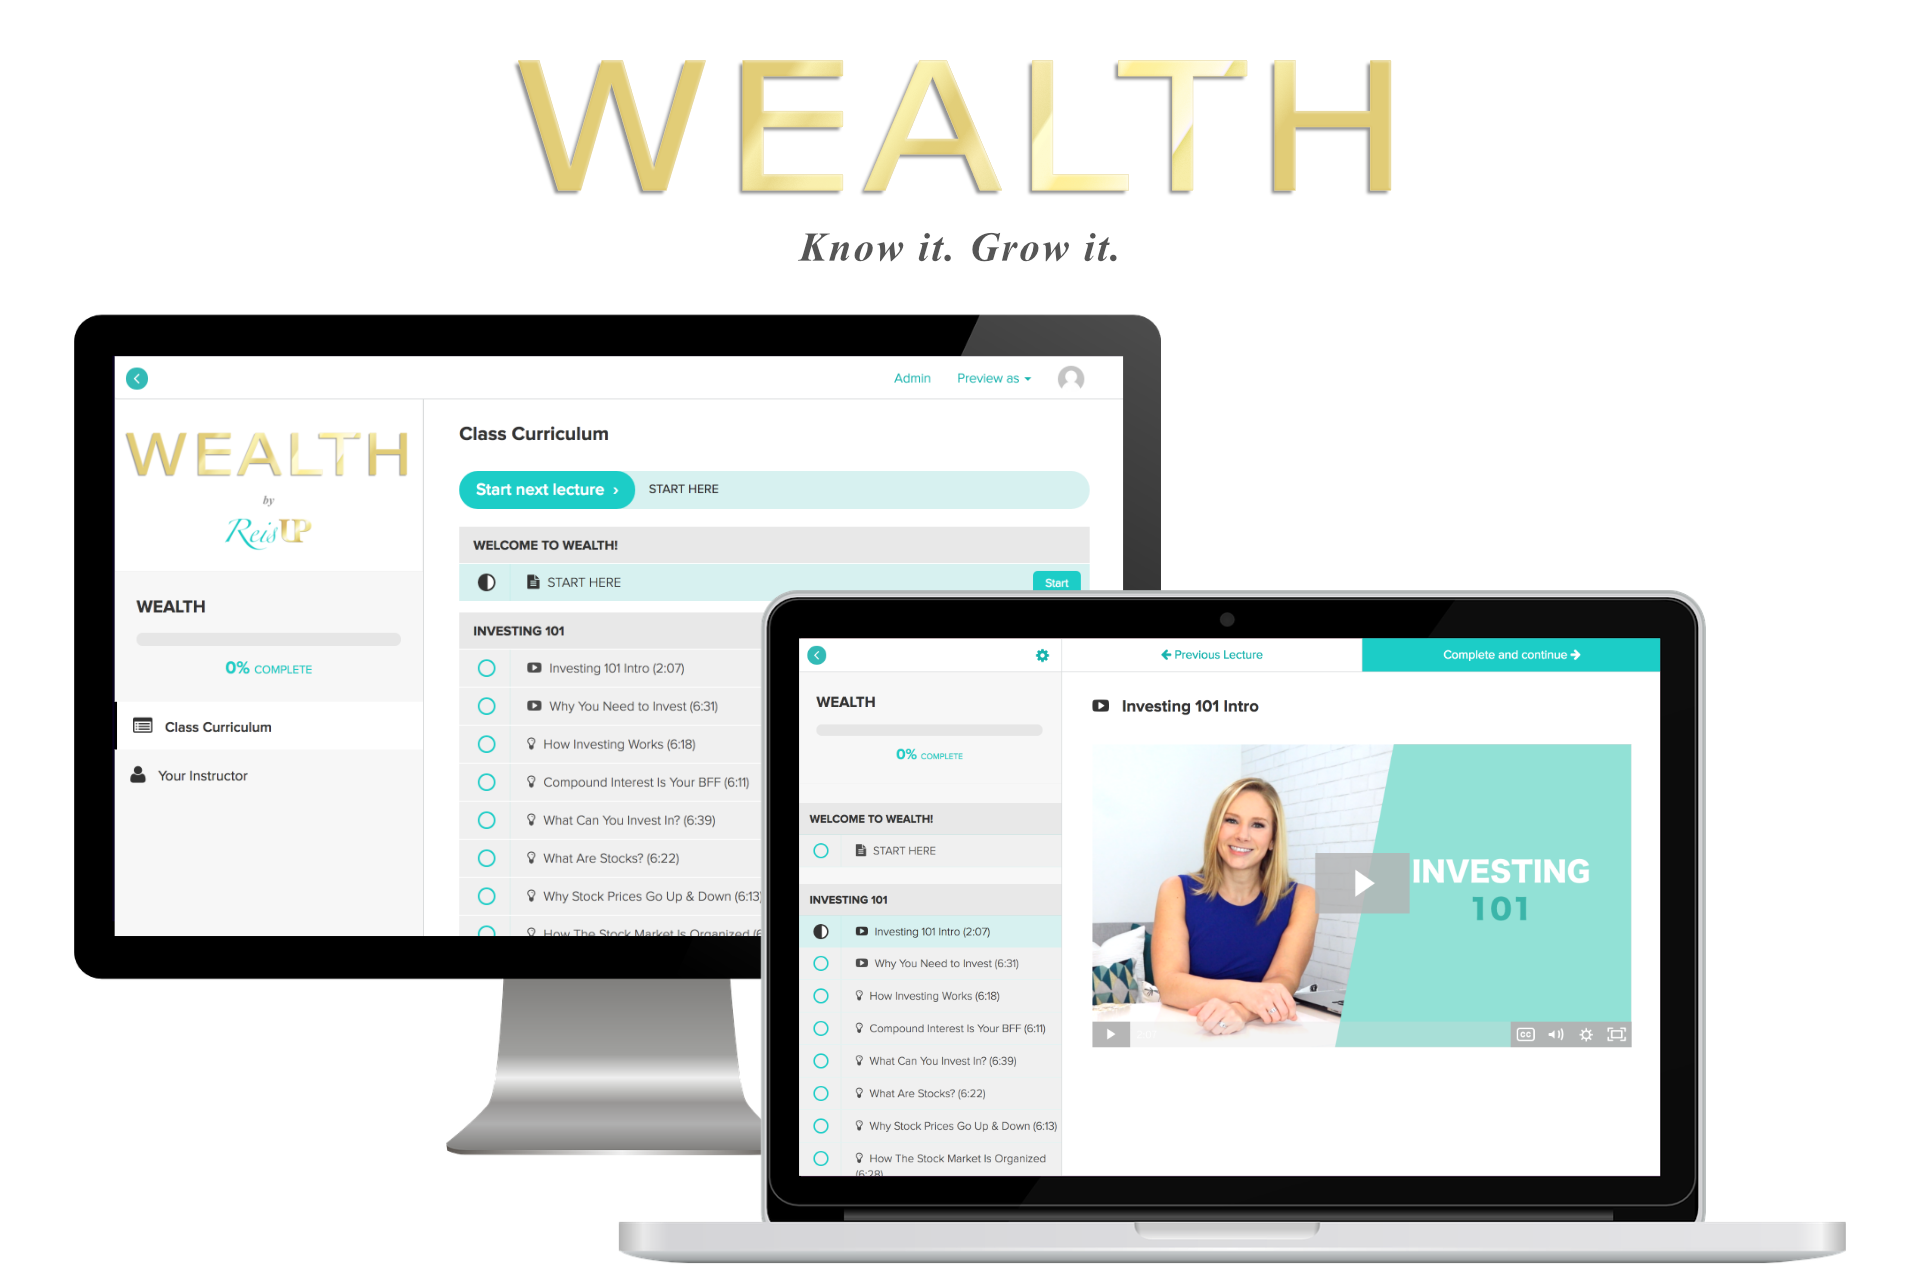 ReisUP WEALTH Online Investing Basics Course Preview